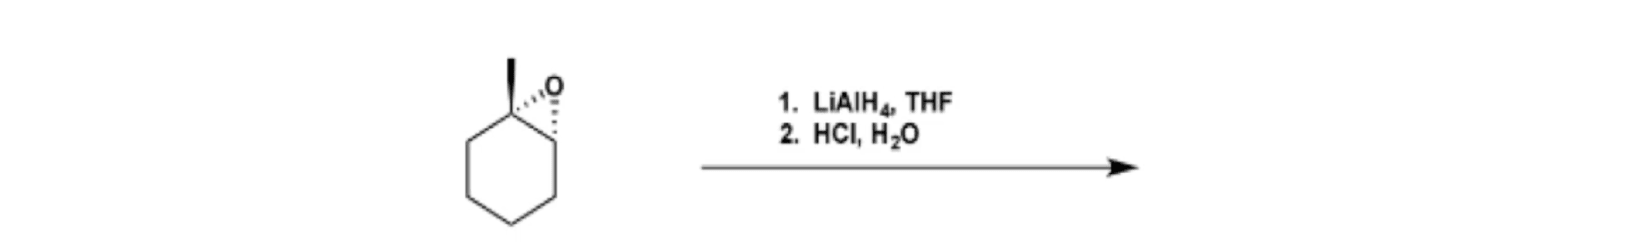 LiAlH4 on Epoxides